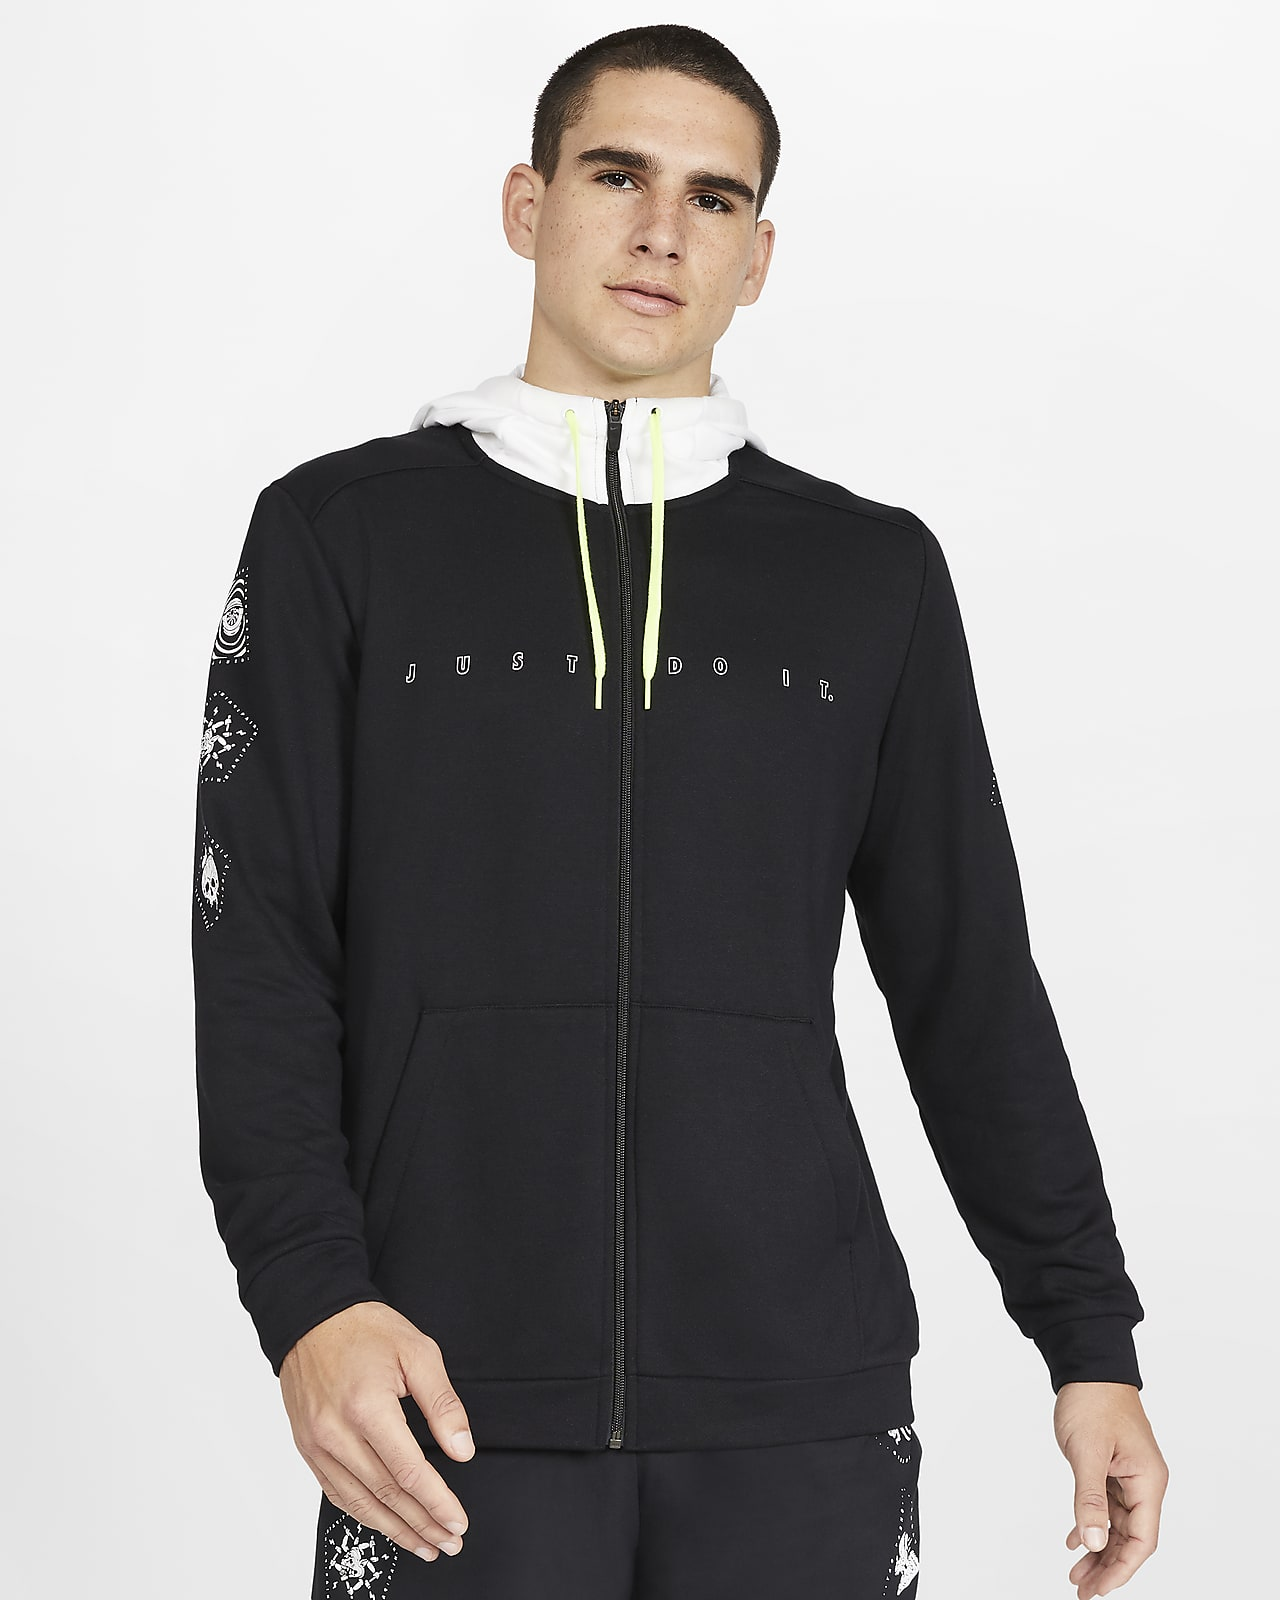 Nike Dri-FIT Men's Fleece Full-Zip Training Hoodie